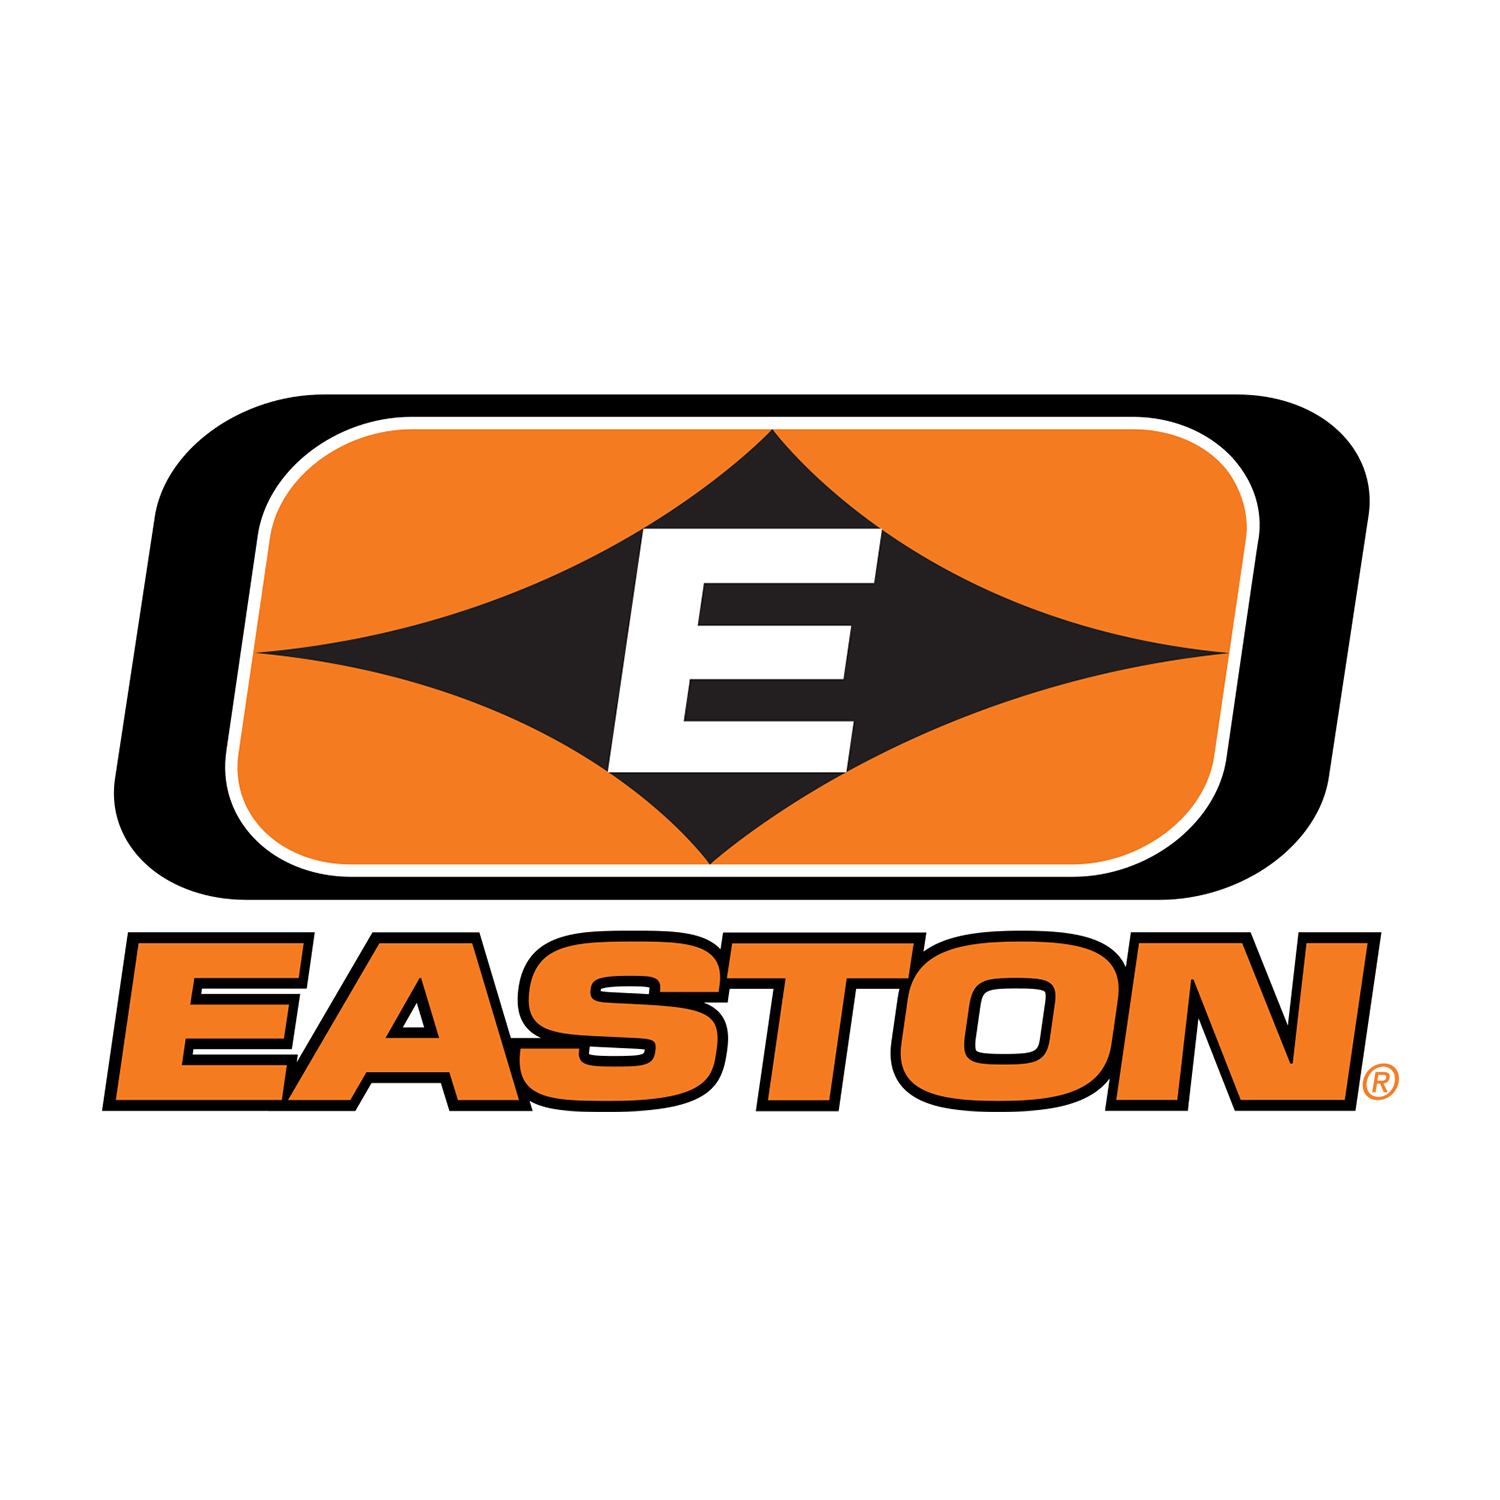 Easton Target Archery Podcast